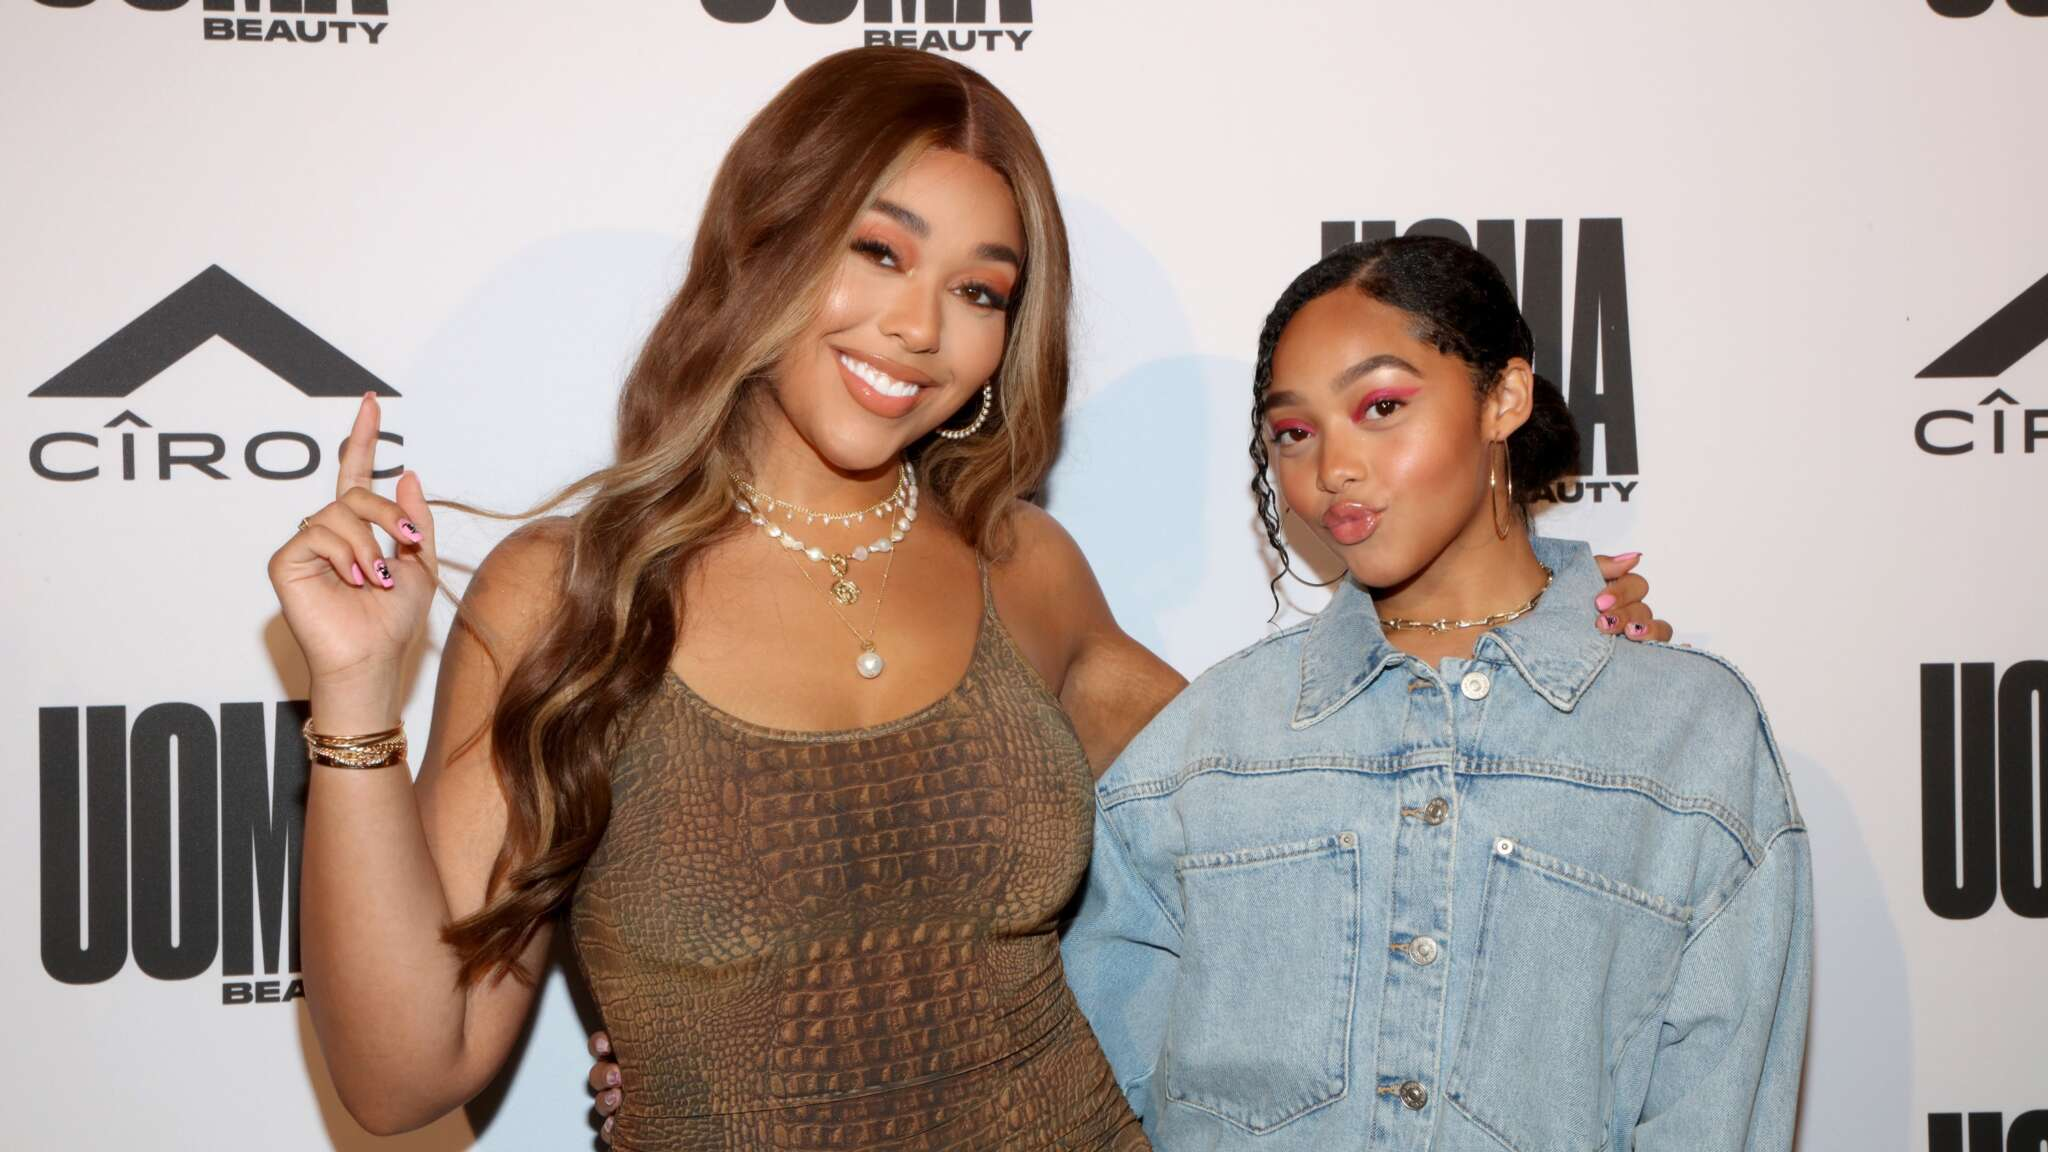 Jordyn Woods Poses With Her Sister, Jodie Woods And They Are Twinning!